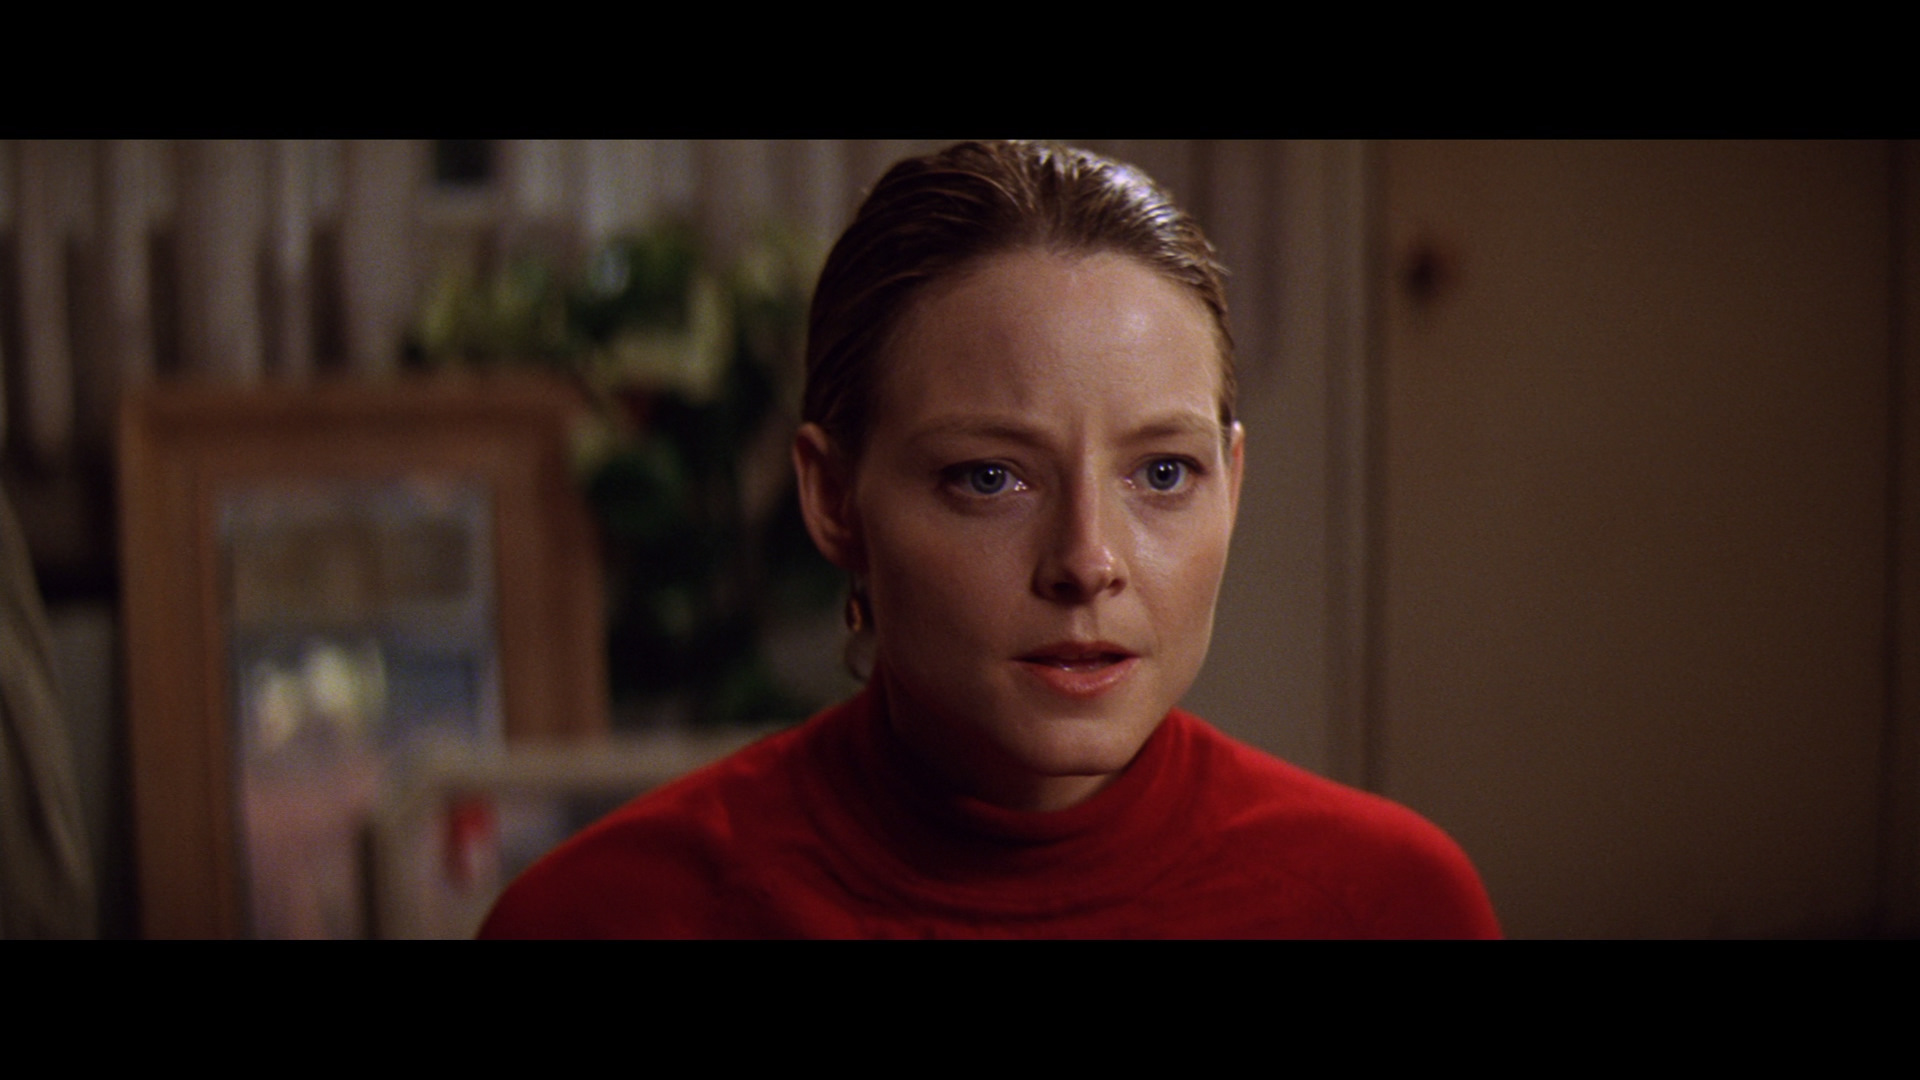 https://i2.wp.com/www.dvdbeaver.com/film2/DVDReviews47/contact_blu-ray_jodie_foster/large/large_contact_blu-ray13.jpg